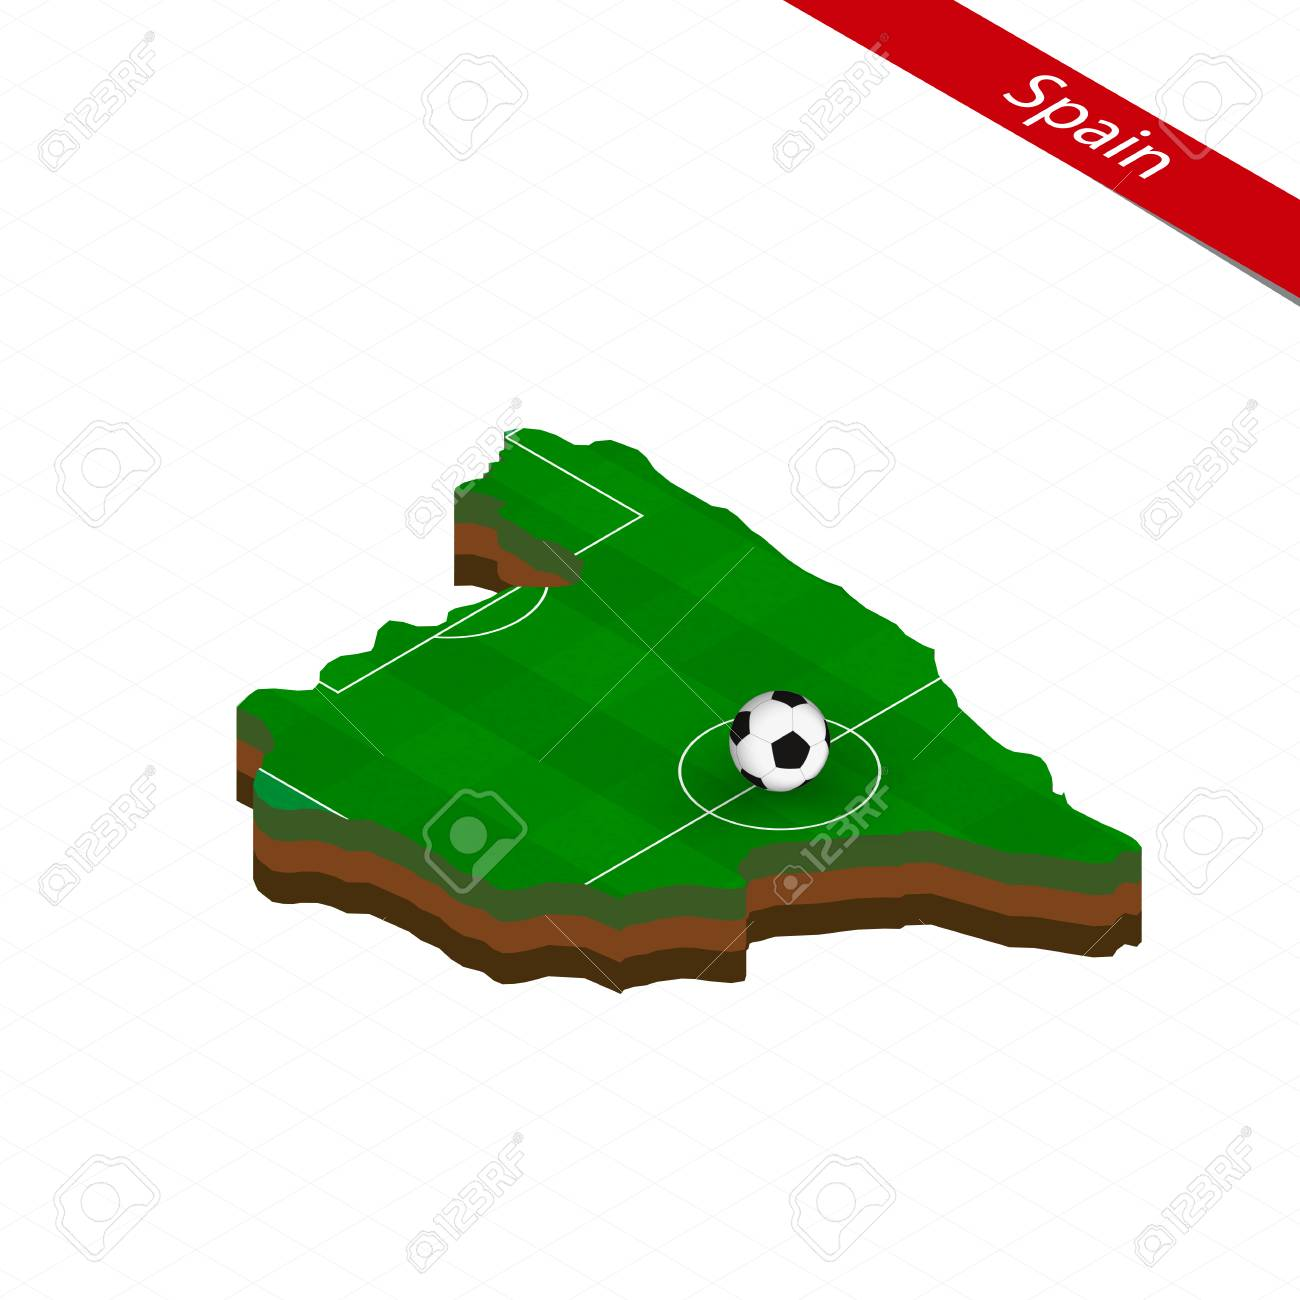 Football Map Of Spain.Isometric Map Of Spain With Soccer Field Football Ball In Center